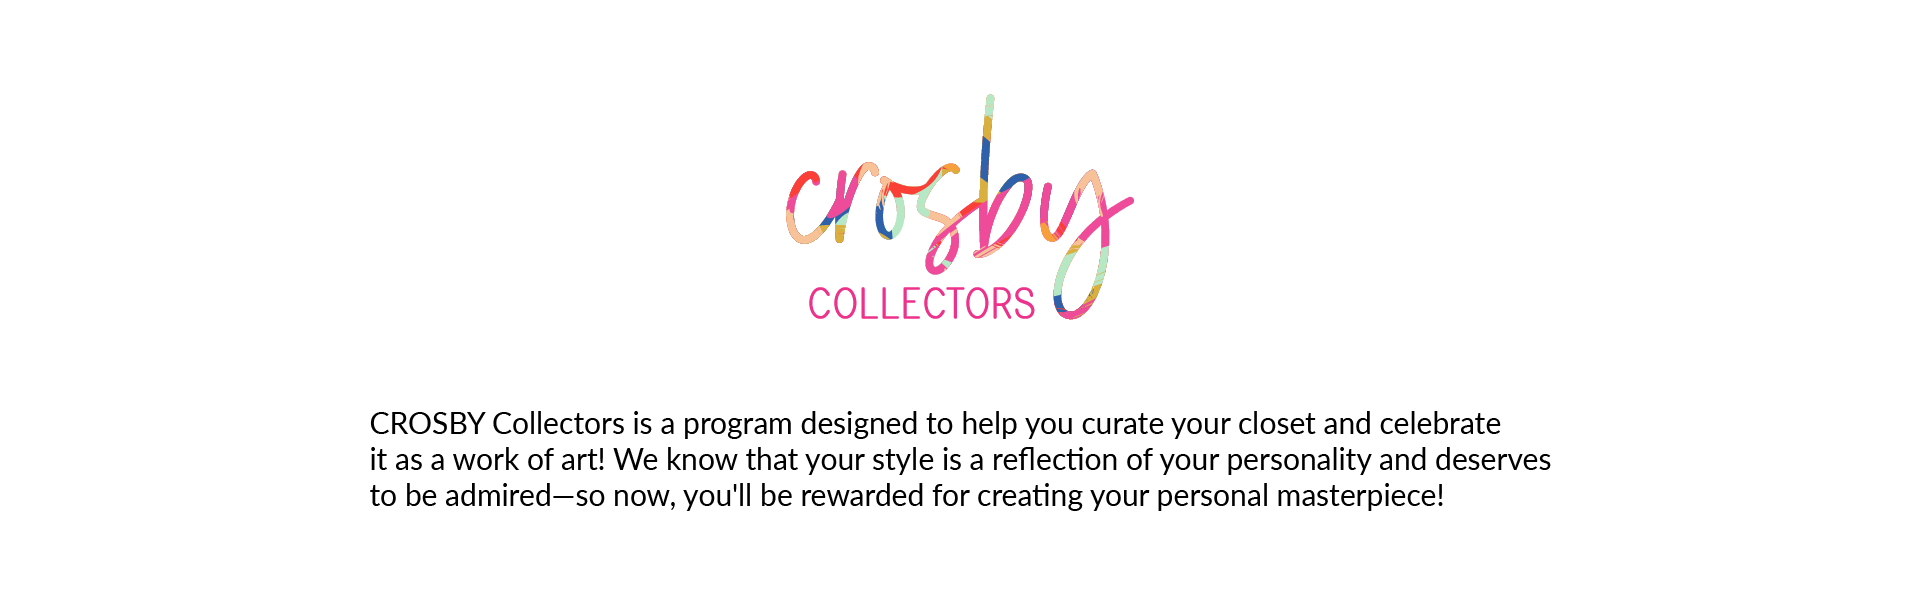 CROSBY Collectors Logo. CROSBY Collectors is a program designed to help you curate your closet and celebrateit as a work of art! We know that your style is a reflection of your personality and deservesto be admired­—so now, you'll be rewarded for creating your personal masterpiece!